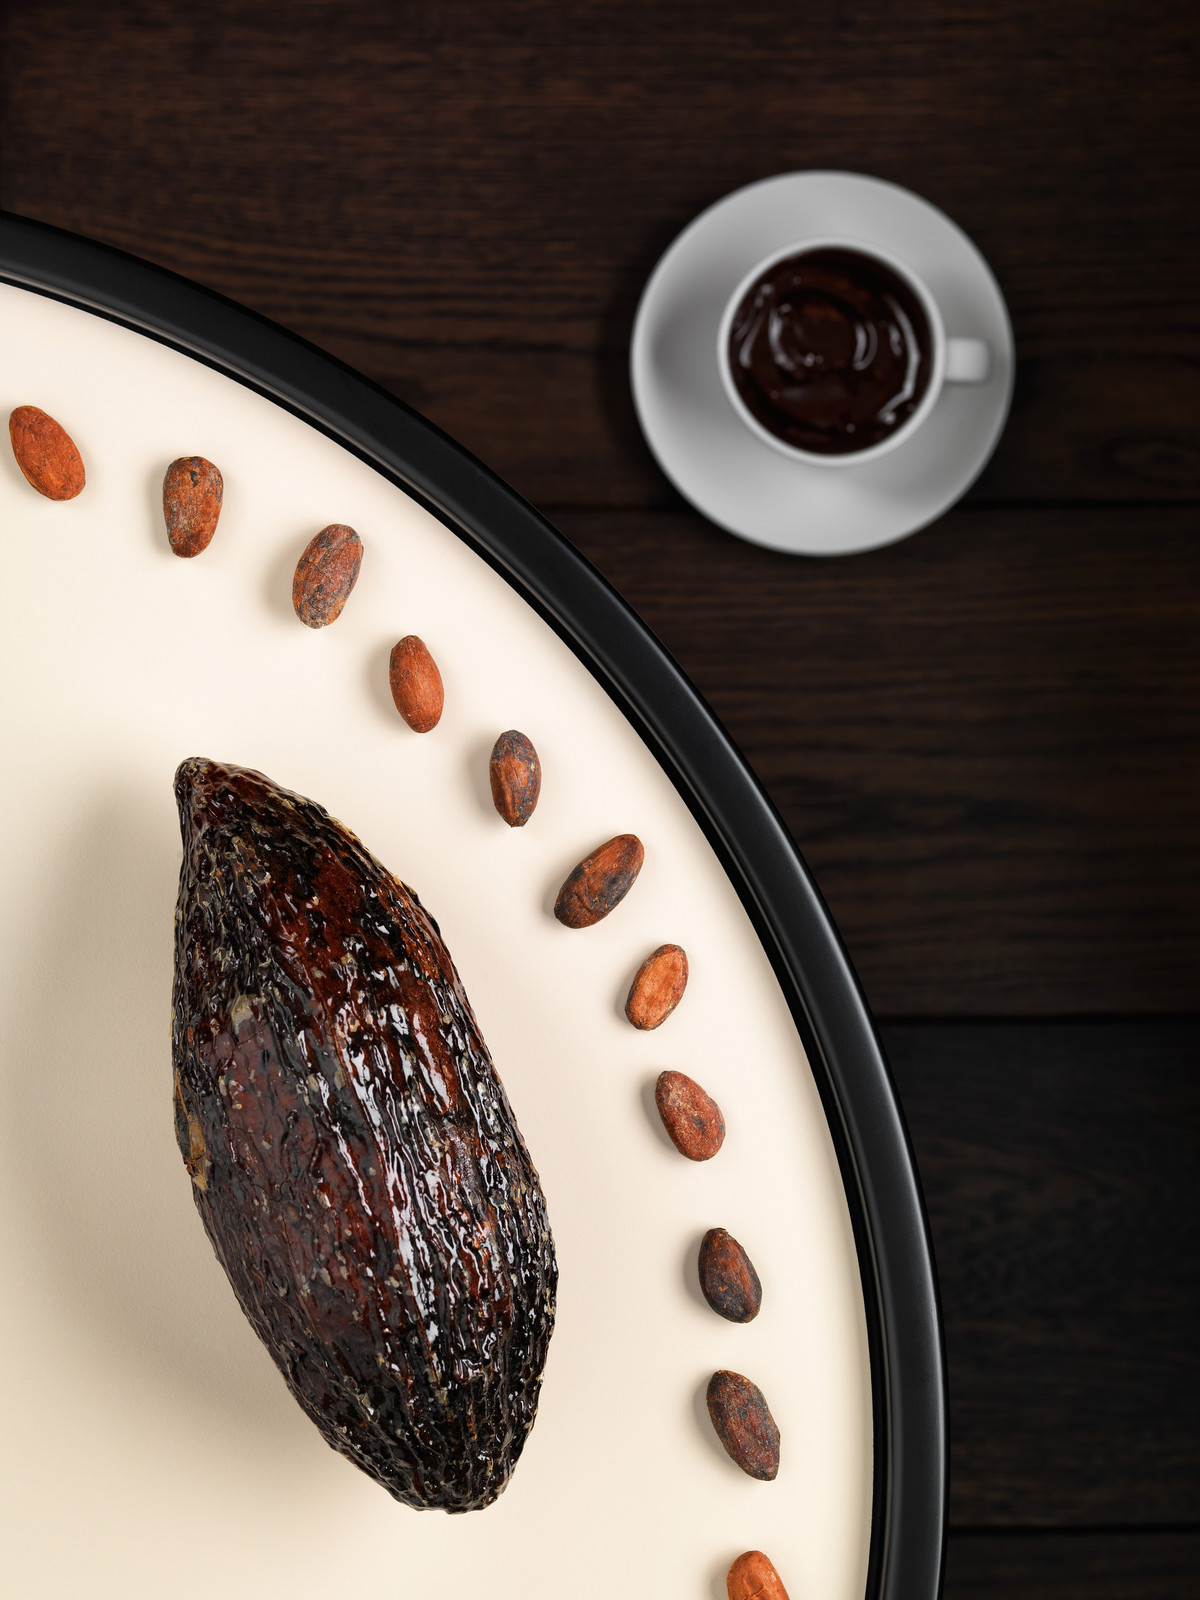 Cocoa pod, beans and hot chocolate